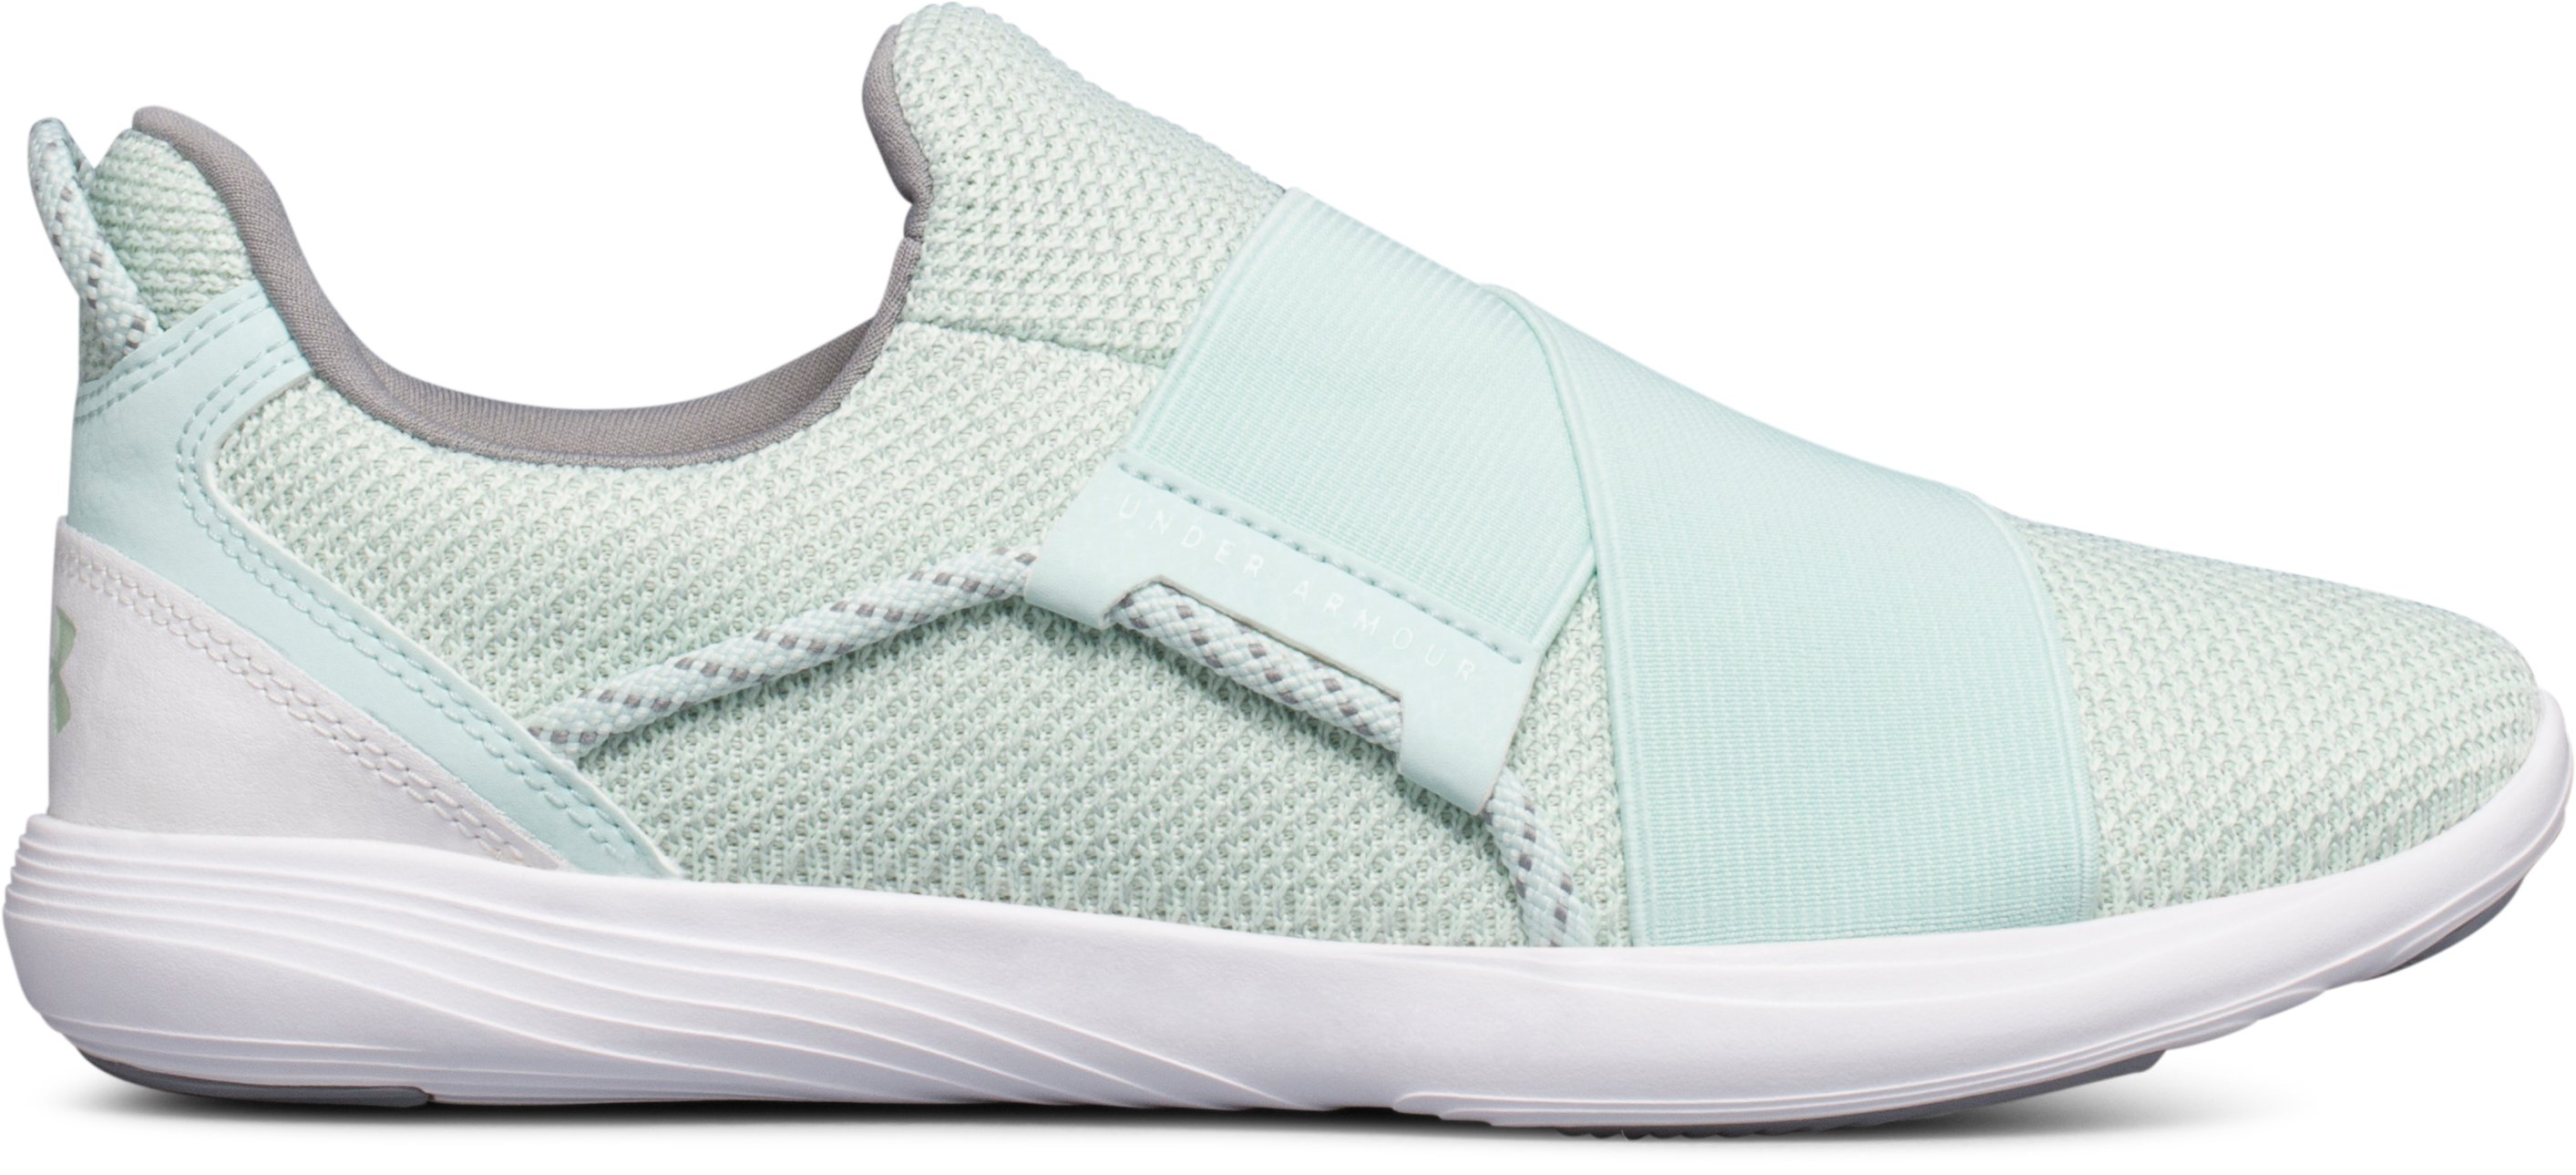 Women's UA Precision X Training Shoes, REFRESH MINT